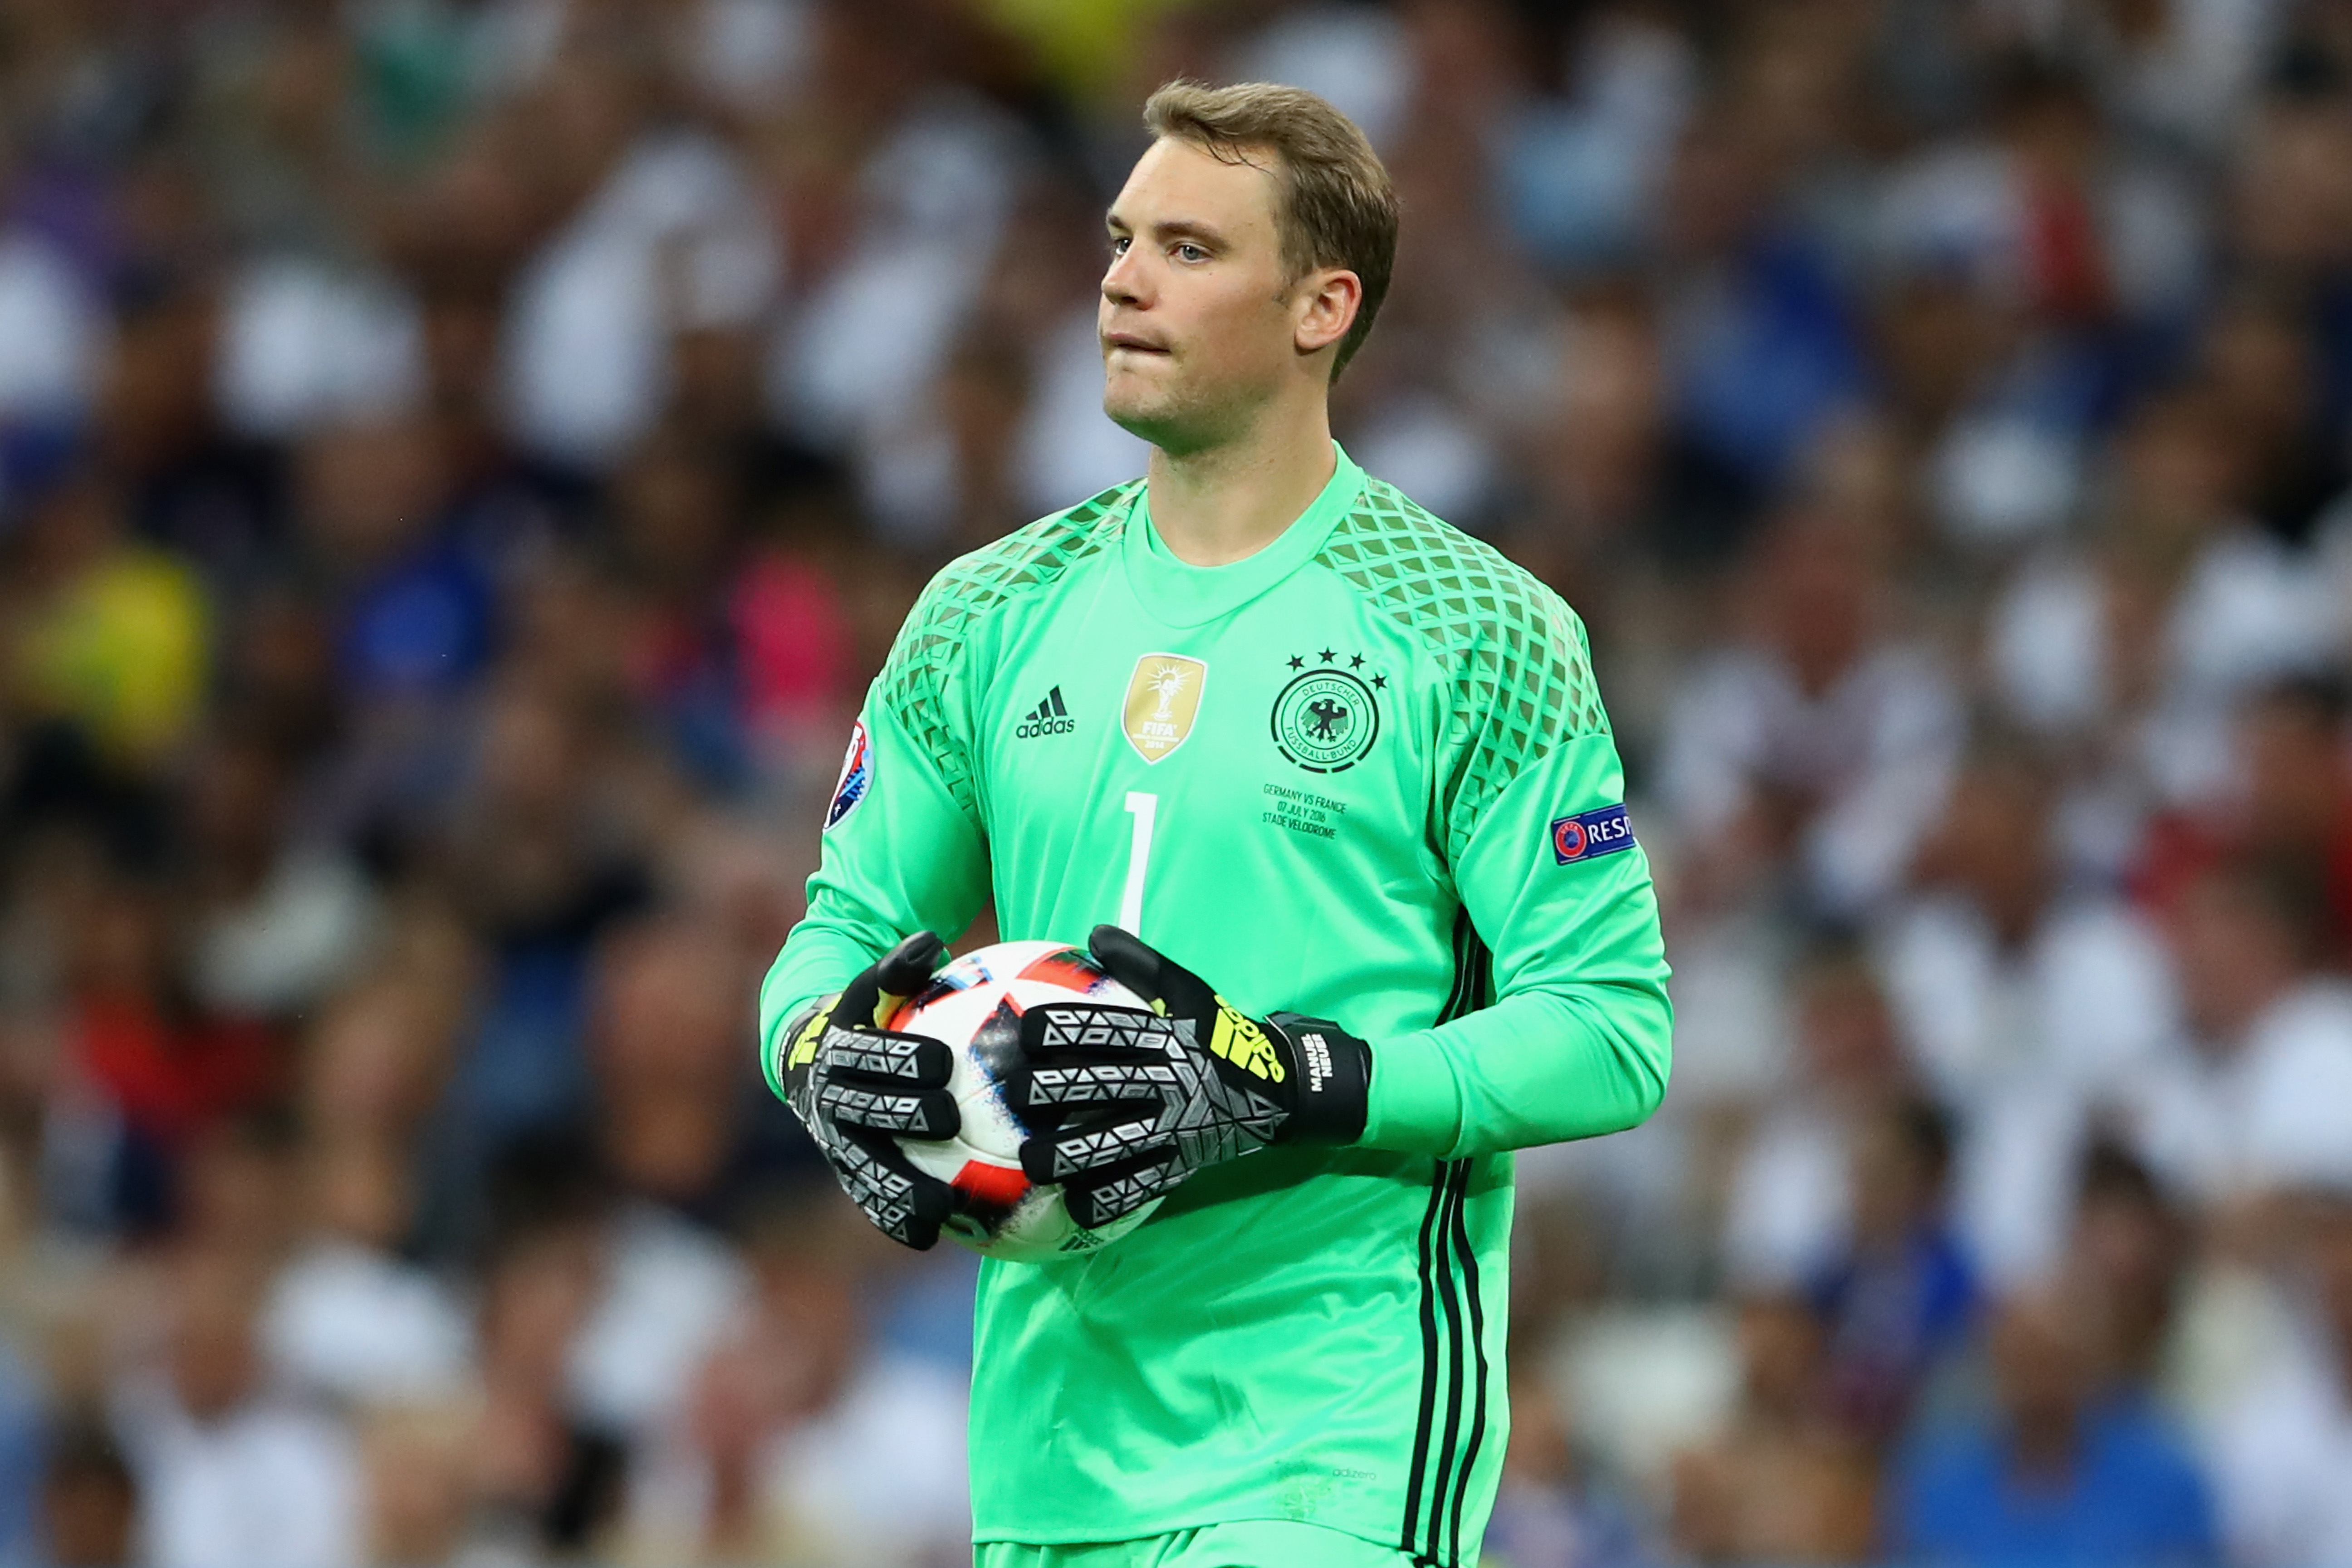 Manuel Neuer Goes Full Manuel Neuer ficial Debut As Skipper